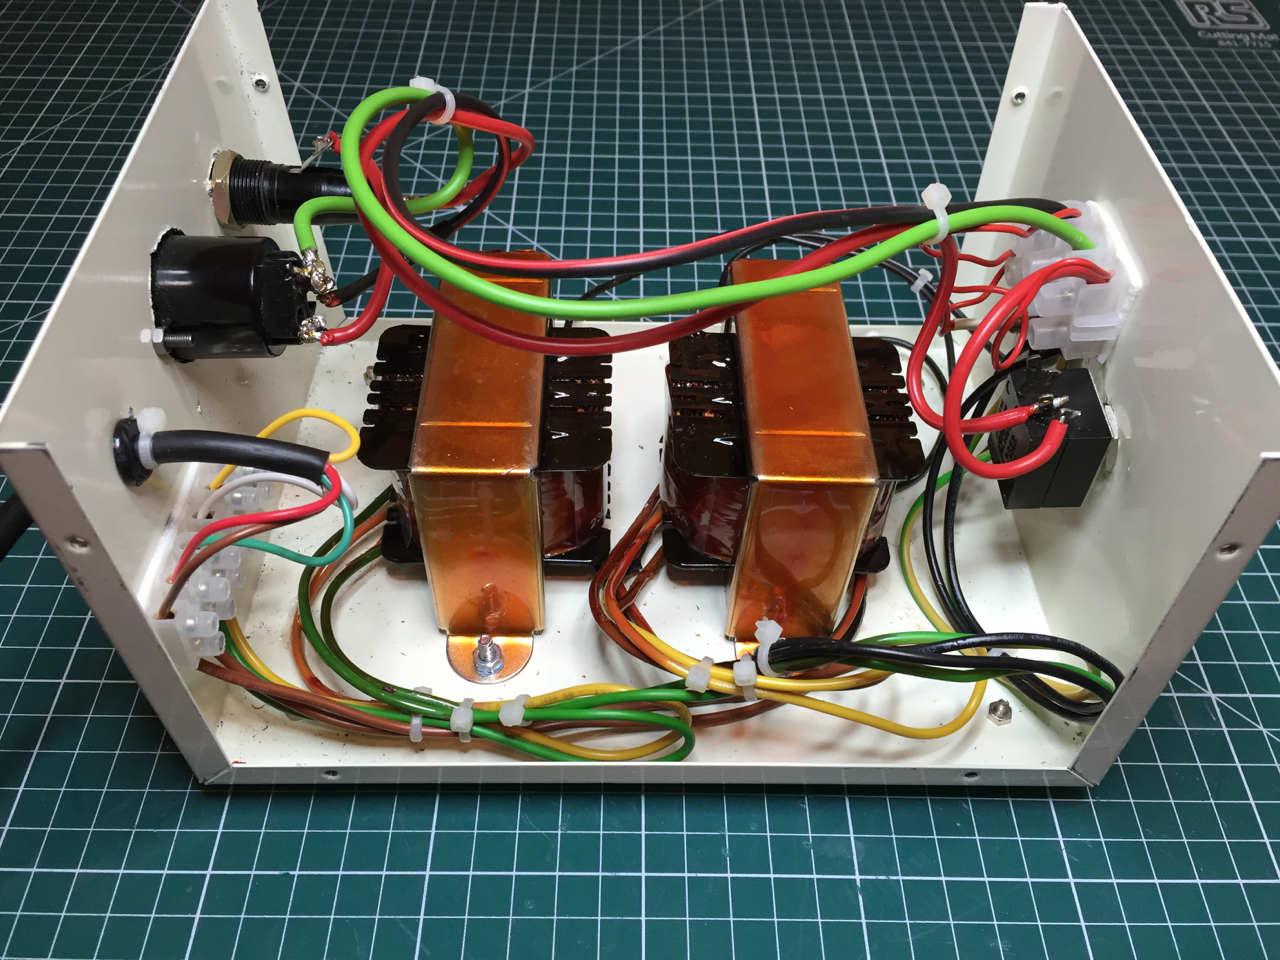 Using Mimeo 1 In Uk Europe Or Australia Newbie Question Electric Connector Holder Ebay I Found This Case On Which Had A Suitable Vintage Look The Switch Power Light Fuse And Mains Are All Period Appropriate